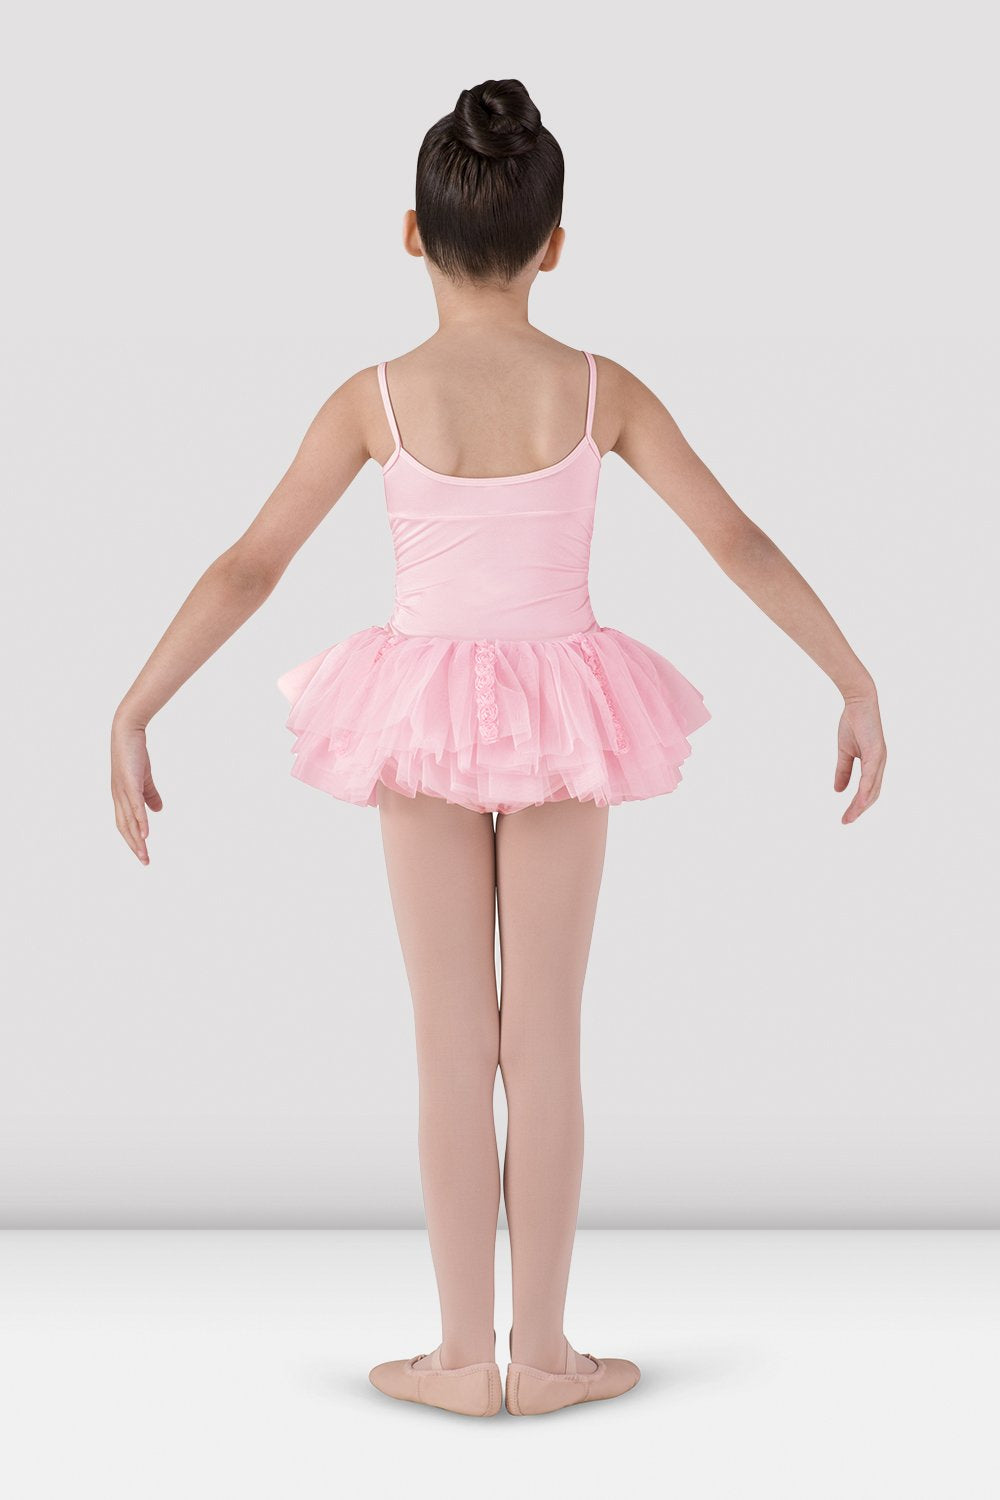 Girls Milani Camisole Tutu Dress - BLOCH US